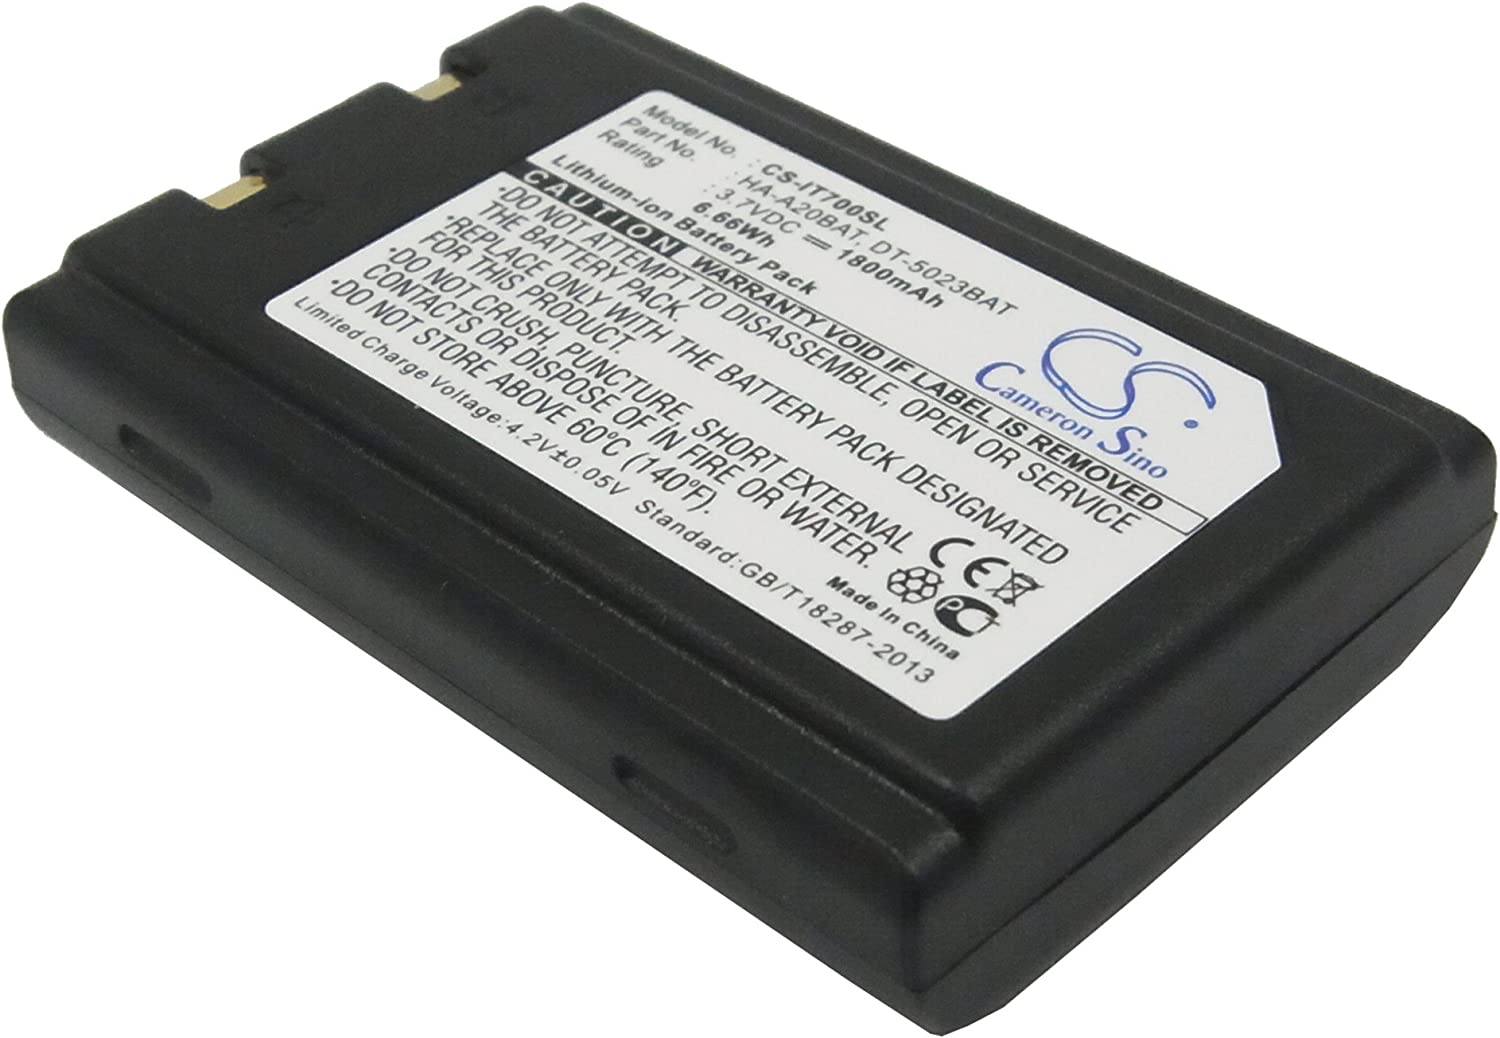 3.7V 20-36098-01 Gorgeous Battery Replacement Sokkia SDR8100 4 years warranty for